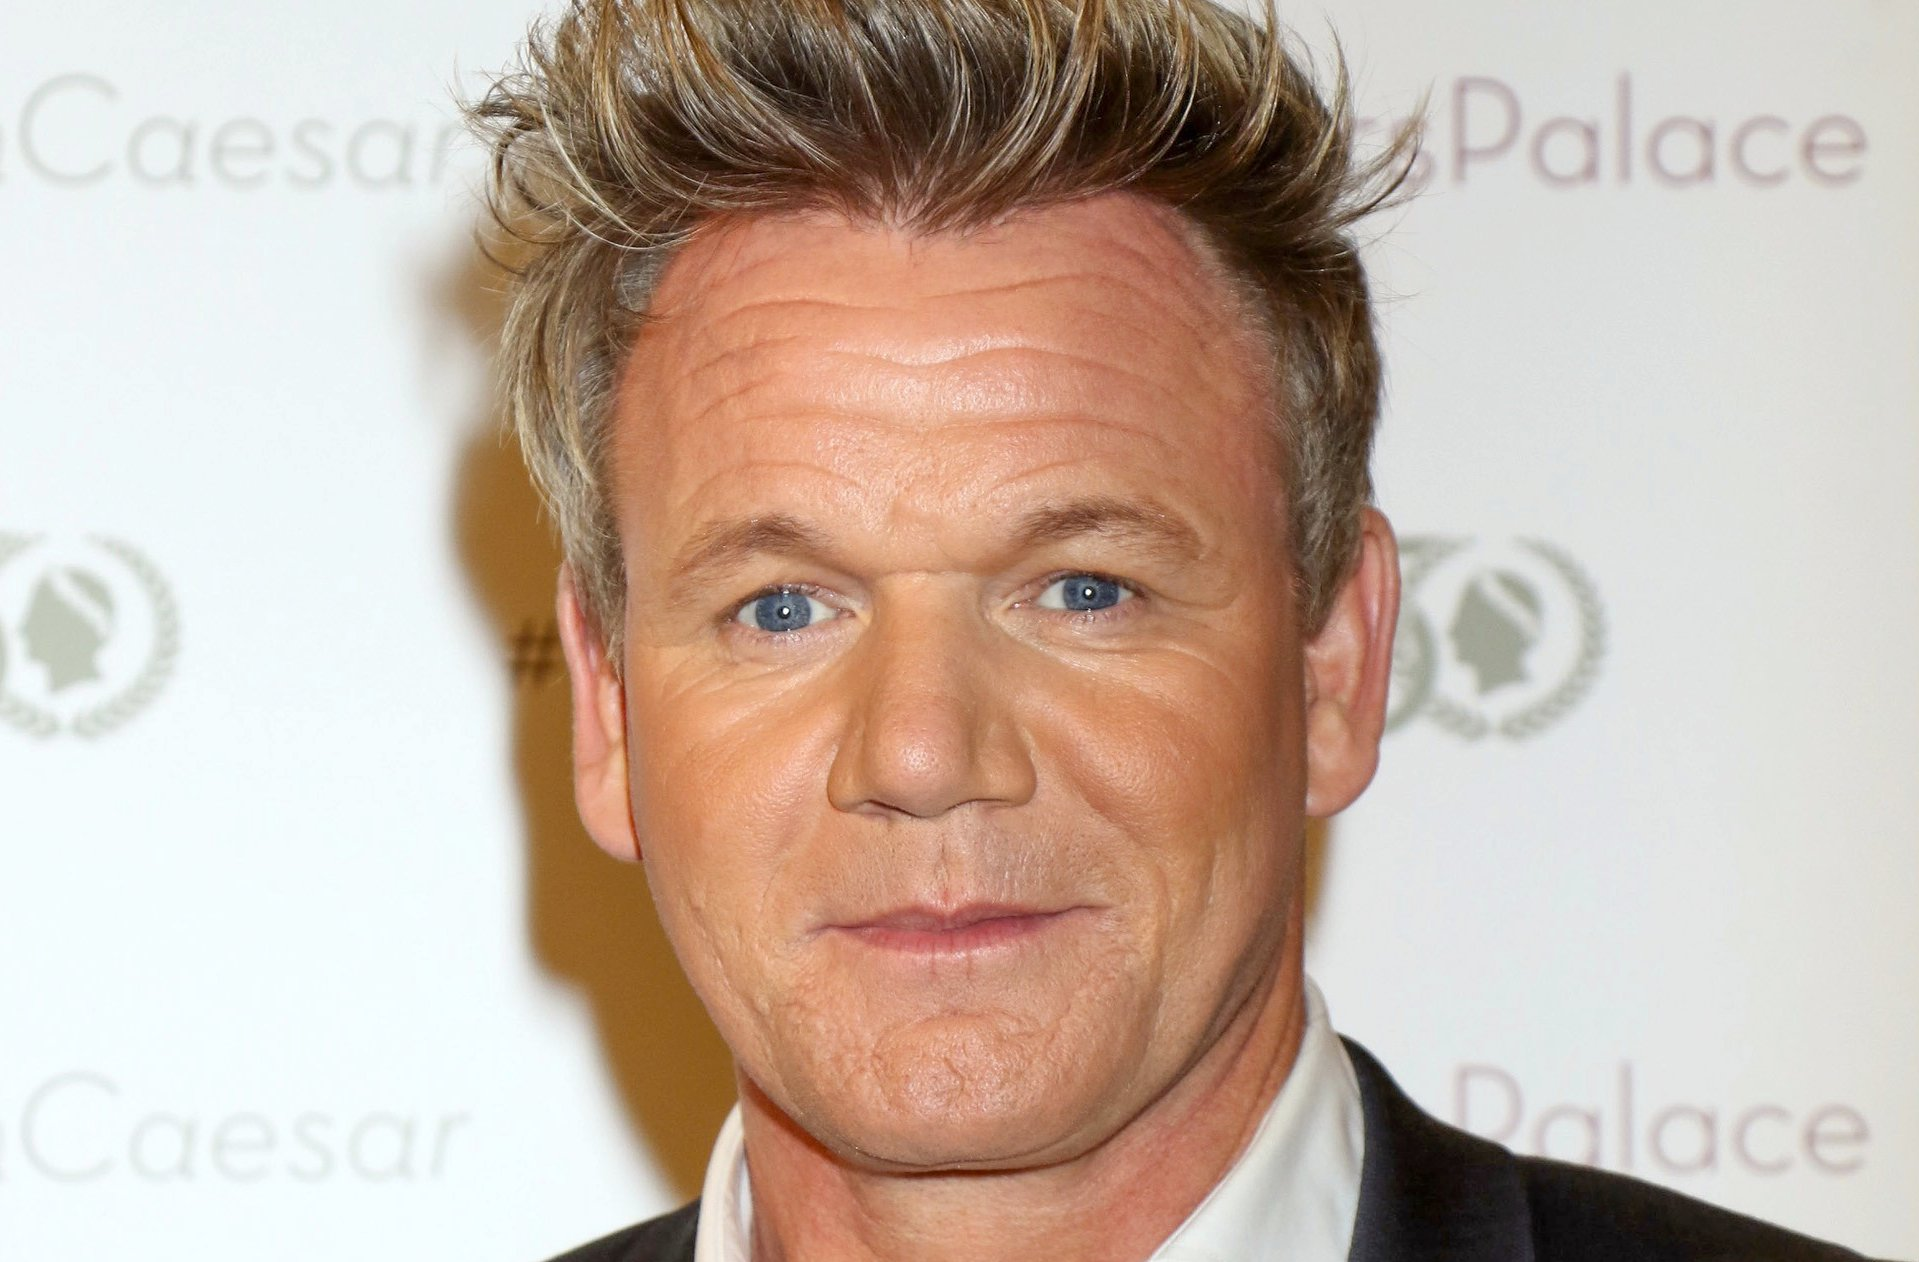 Gordon Ramsay reveals the real reason he lost four stone